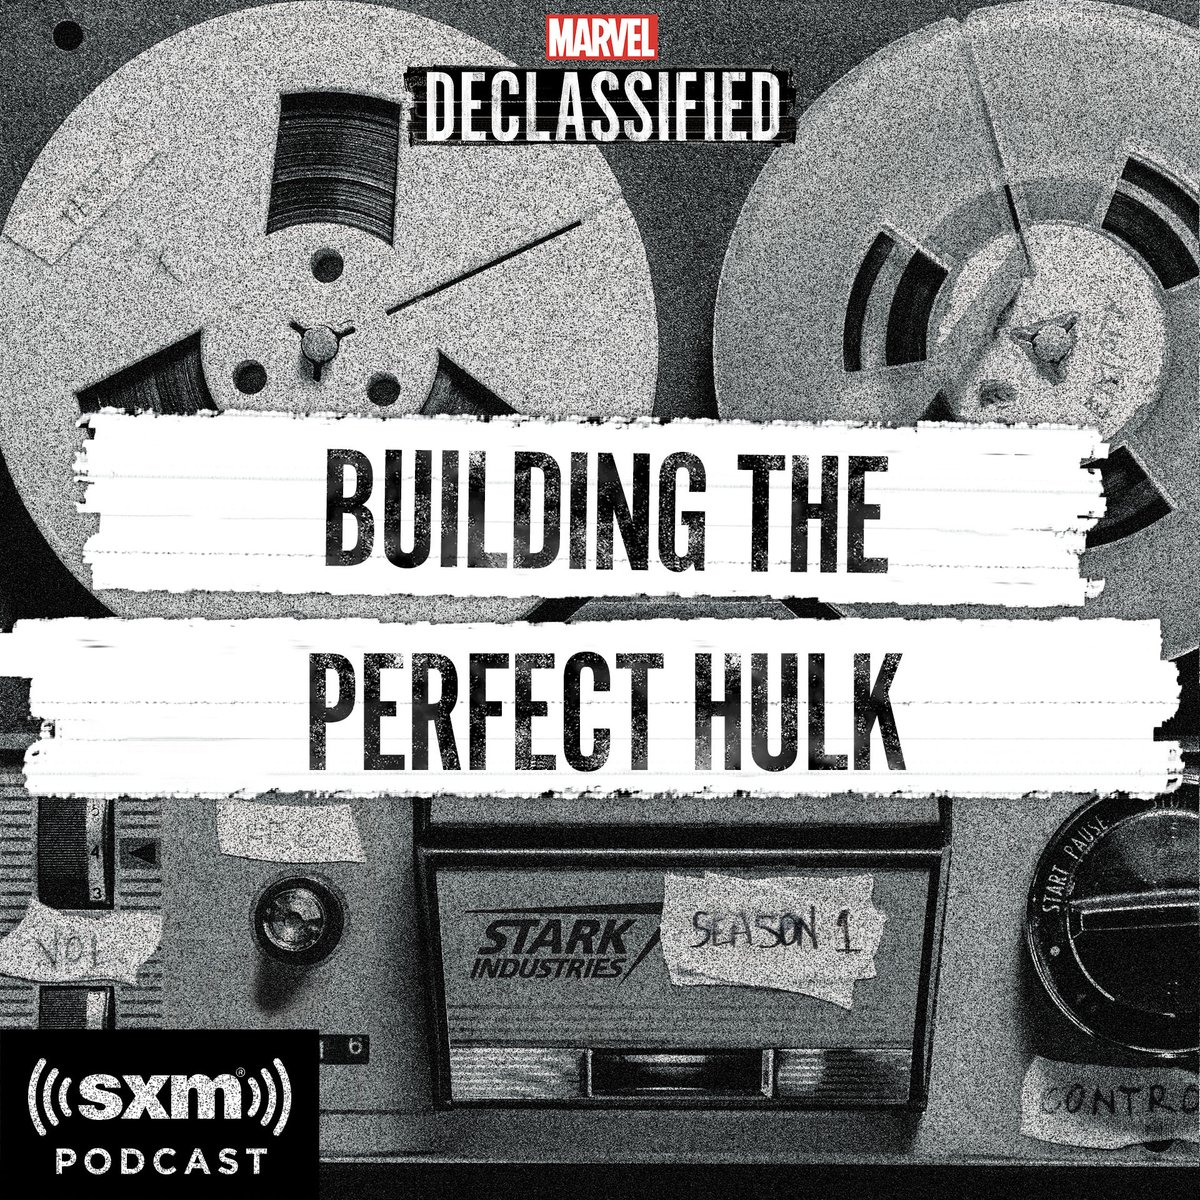 @lorrainecink Tune in for all this and more, including audio documentation of @lorrainecink Hulking out. Thanks to all our guests and our awesome producers. I love doing this show! #MarvelsDeclassified.